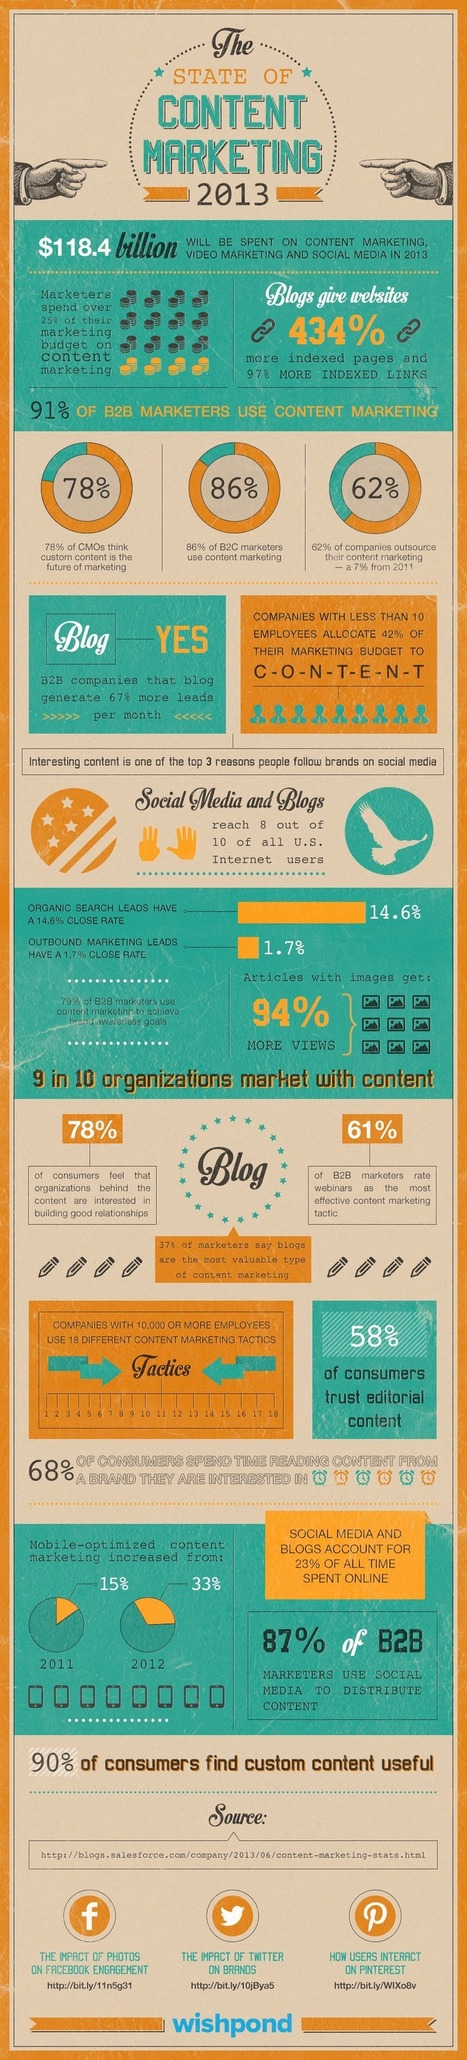 Social Media And Content Marketing Generate More Leads For Brands [INFOGRAPHIC] | IMC-Marcoms2014 | Scoop.it